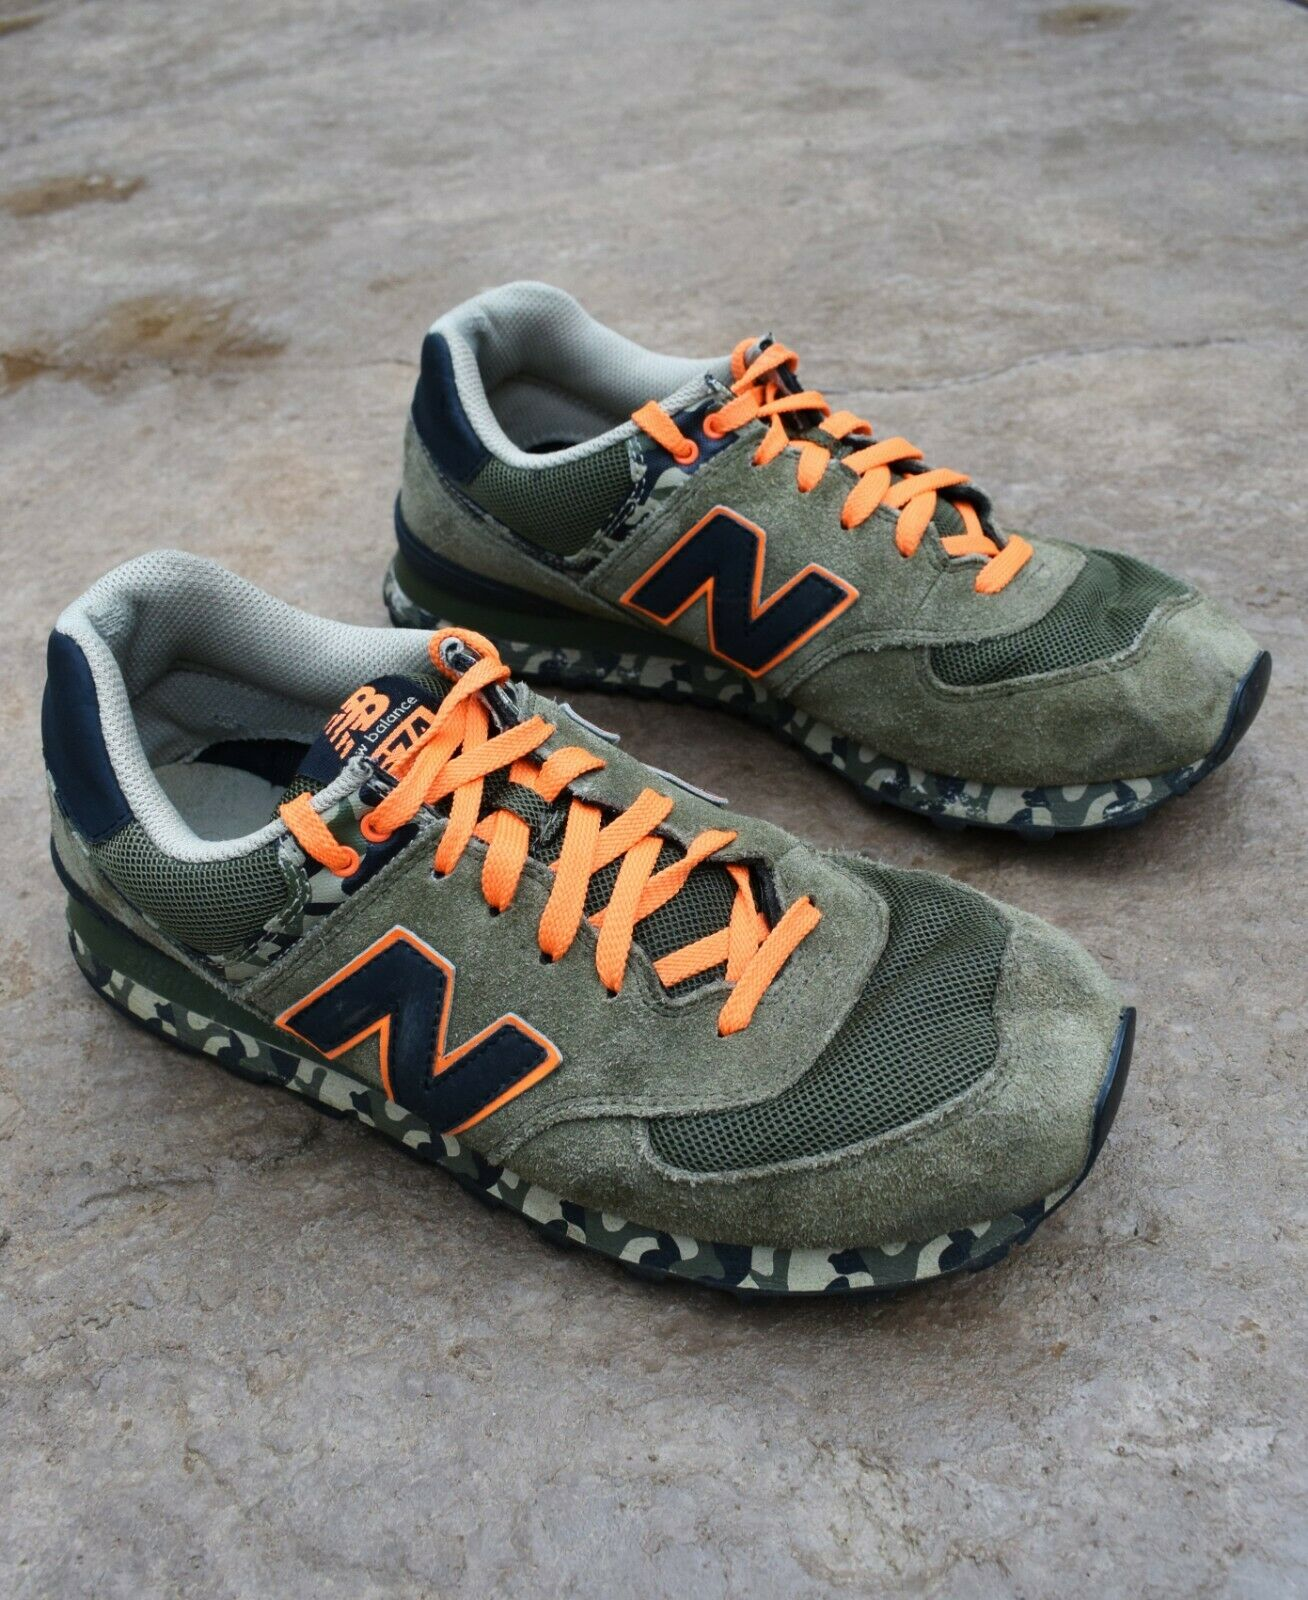 New Balance 574 Camo Green shoes Sneakers Mens Size 11.5 Trainers Casual Suede